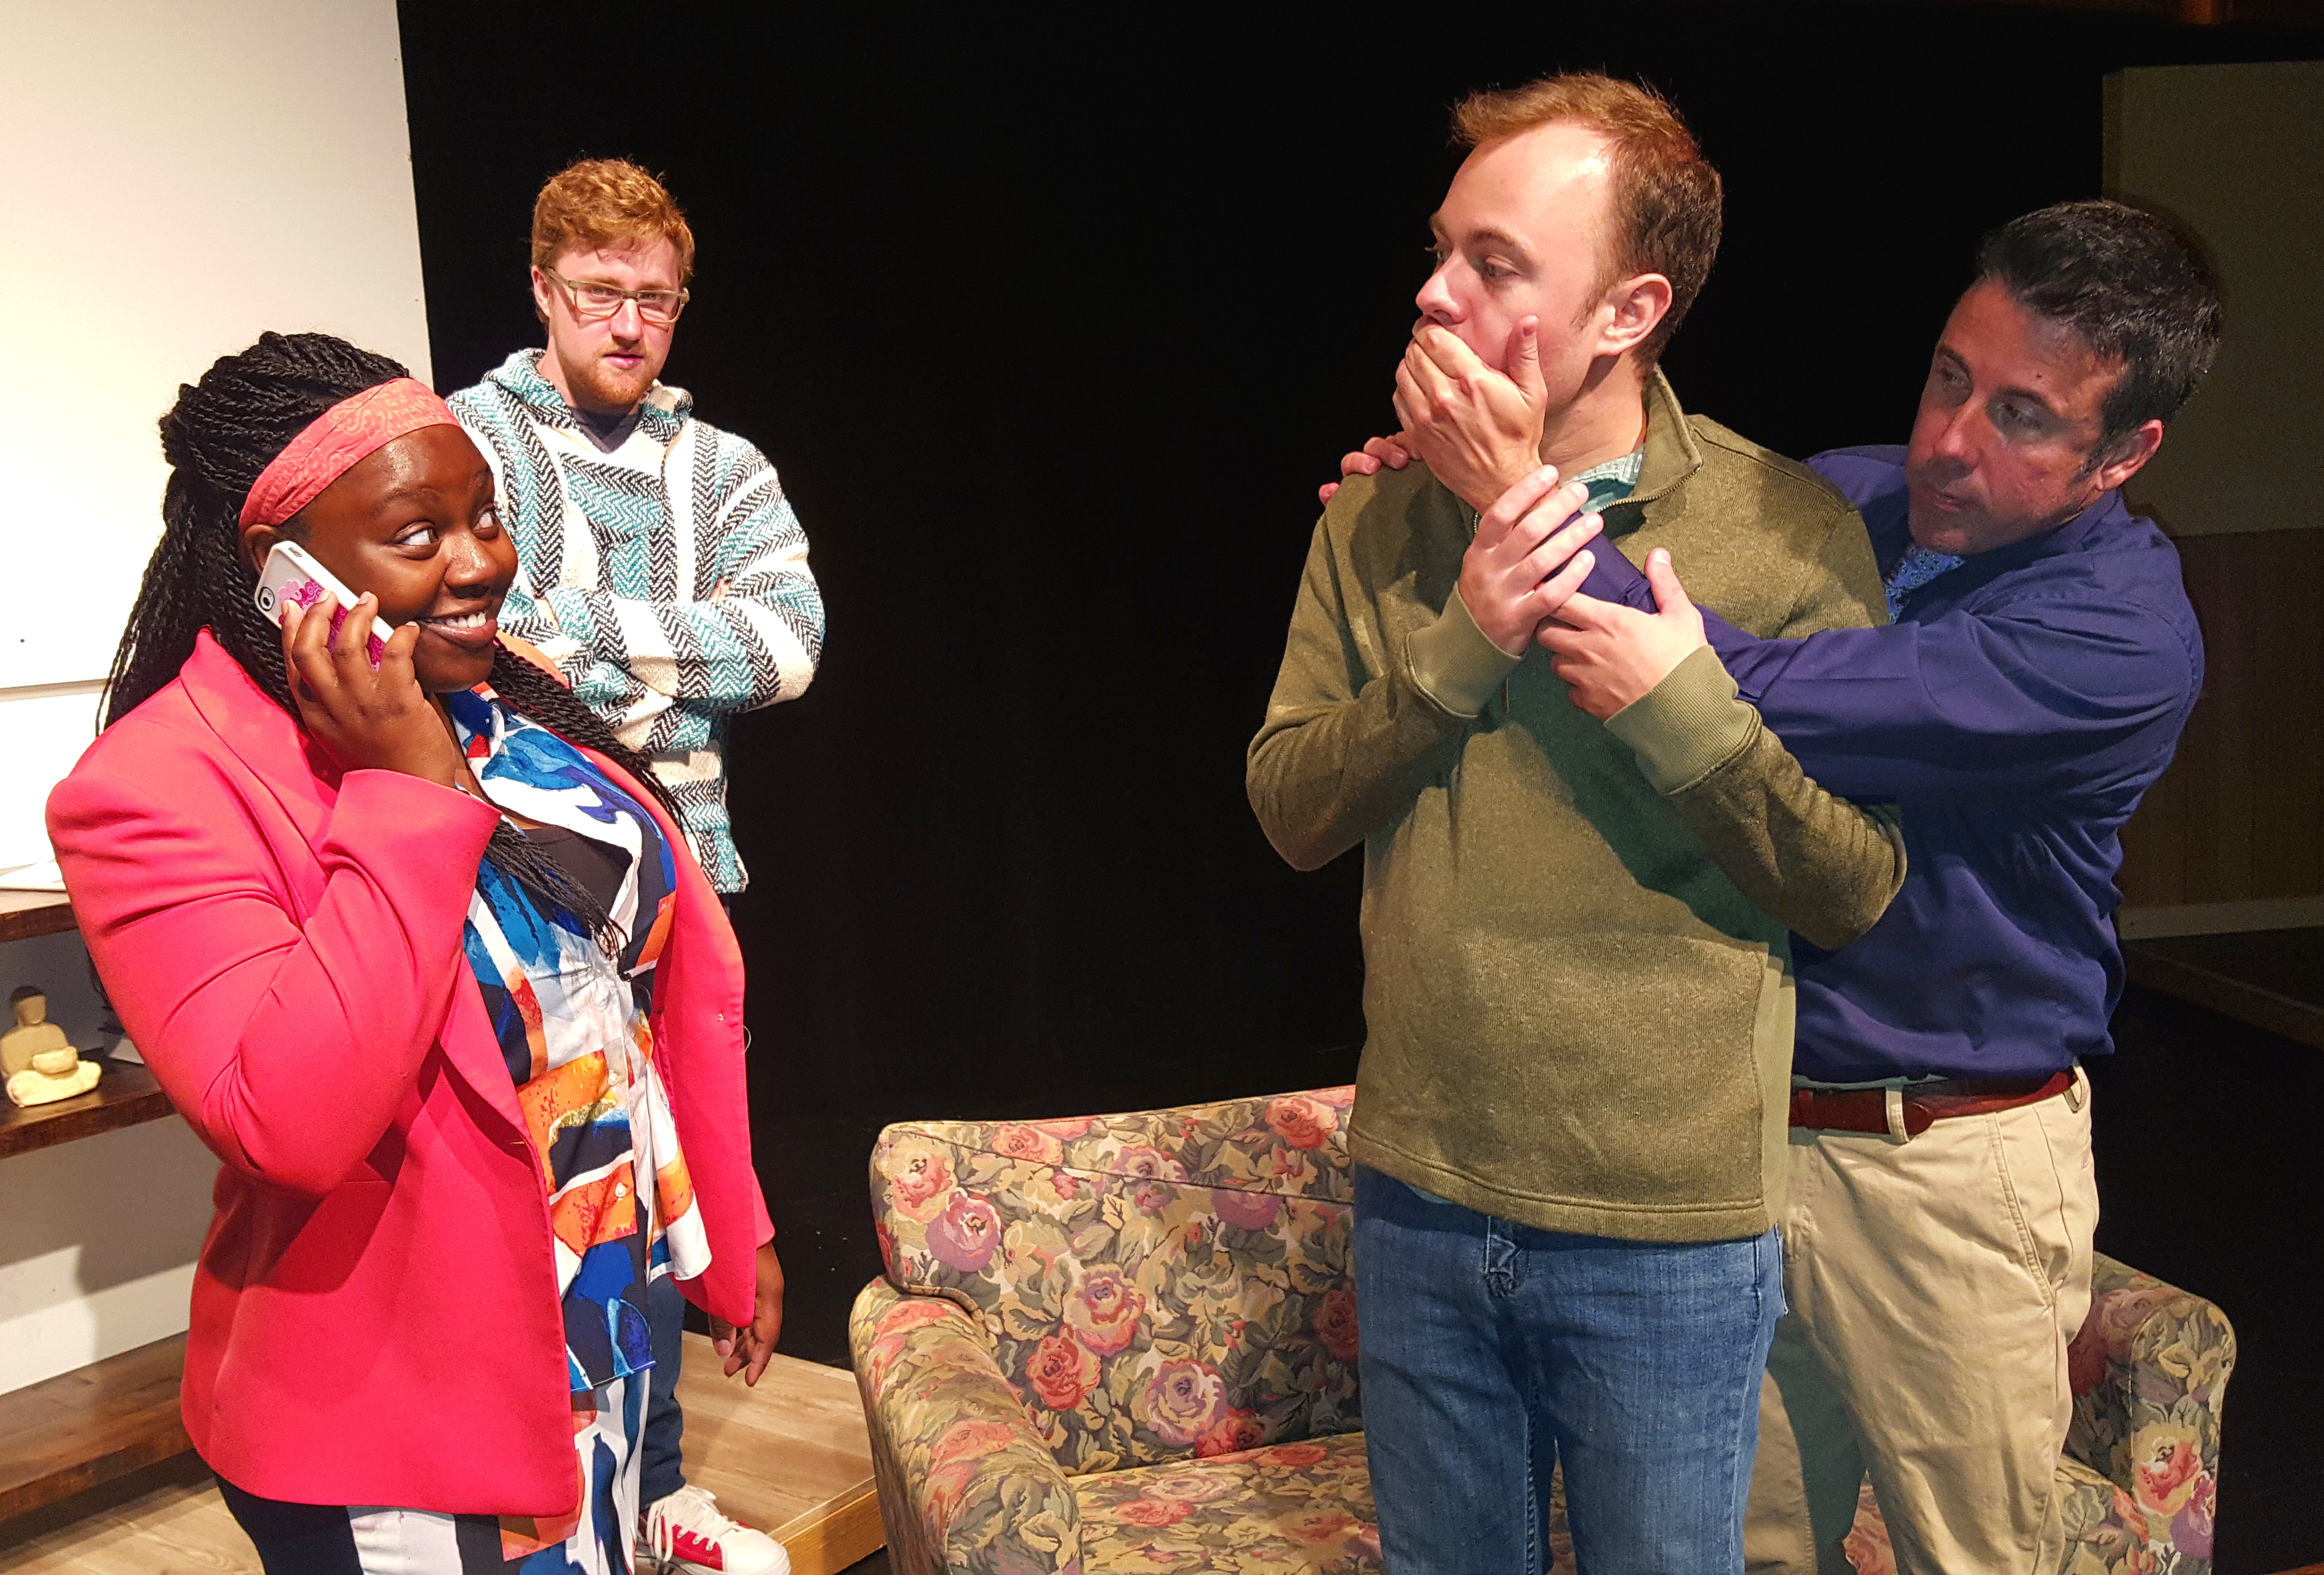 BWW Review: Playwright Imposter Goes Off-Script in THE SUBMISSION